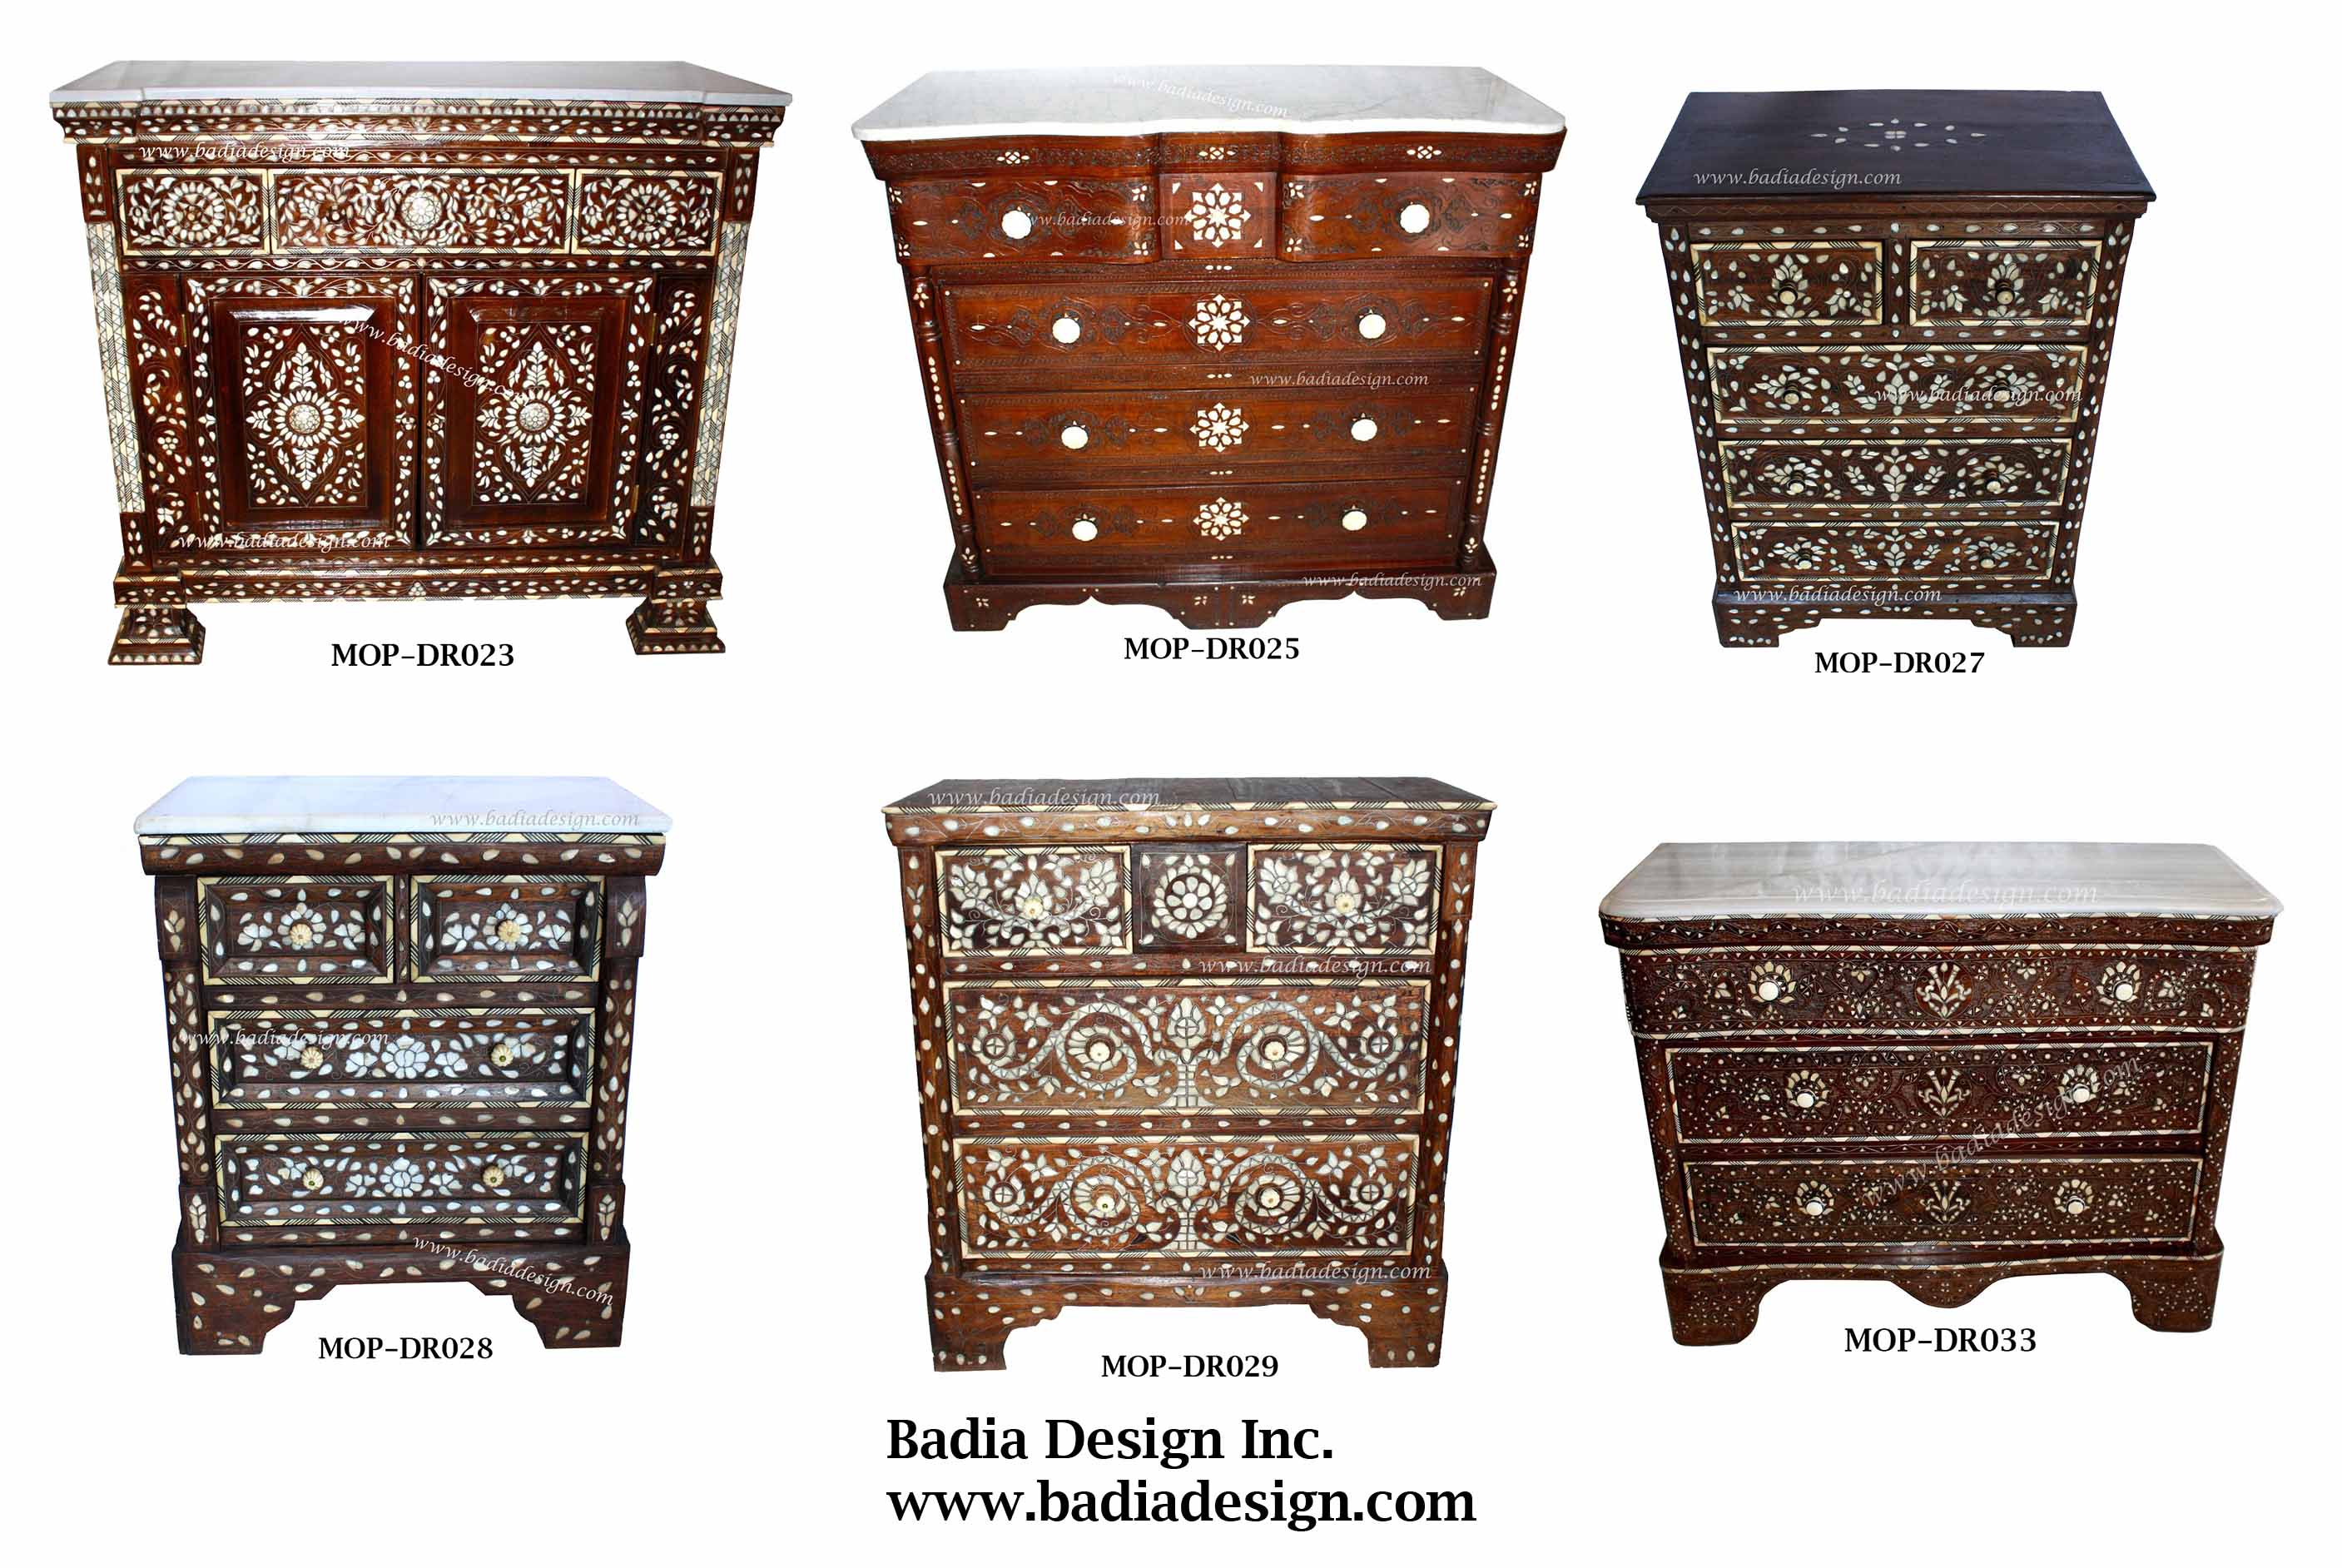 Moroccan Furniture Los Angeles Badia Design Inc Has The Largest Inventory Of Moroccan